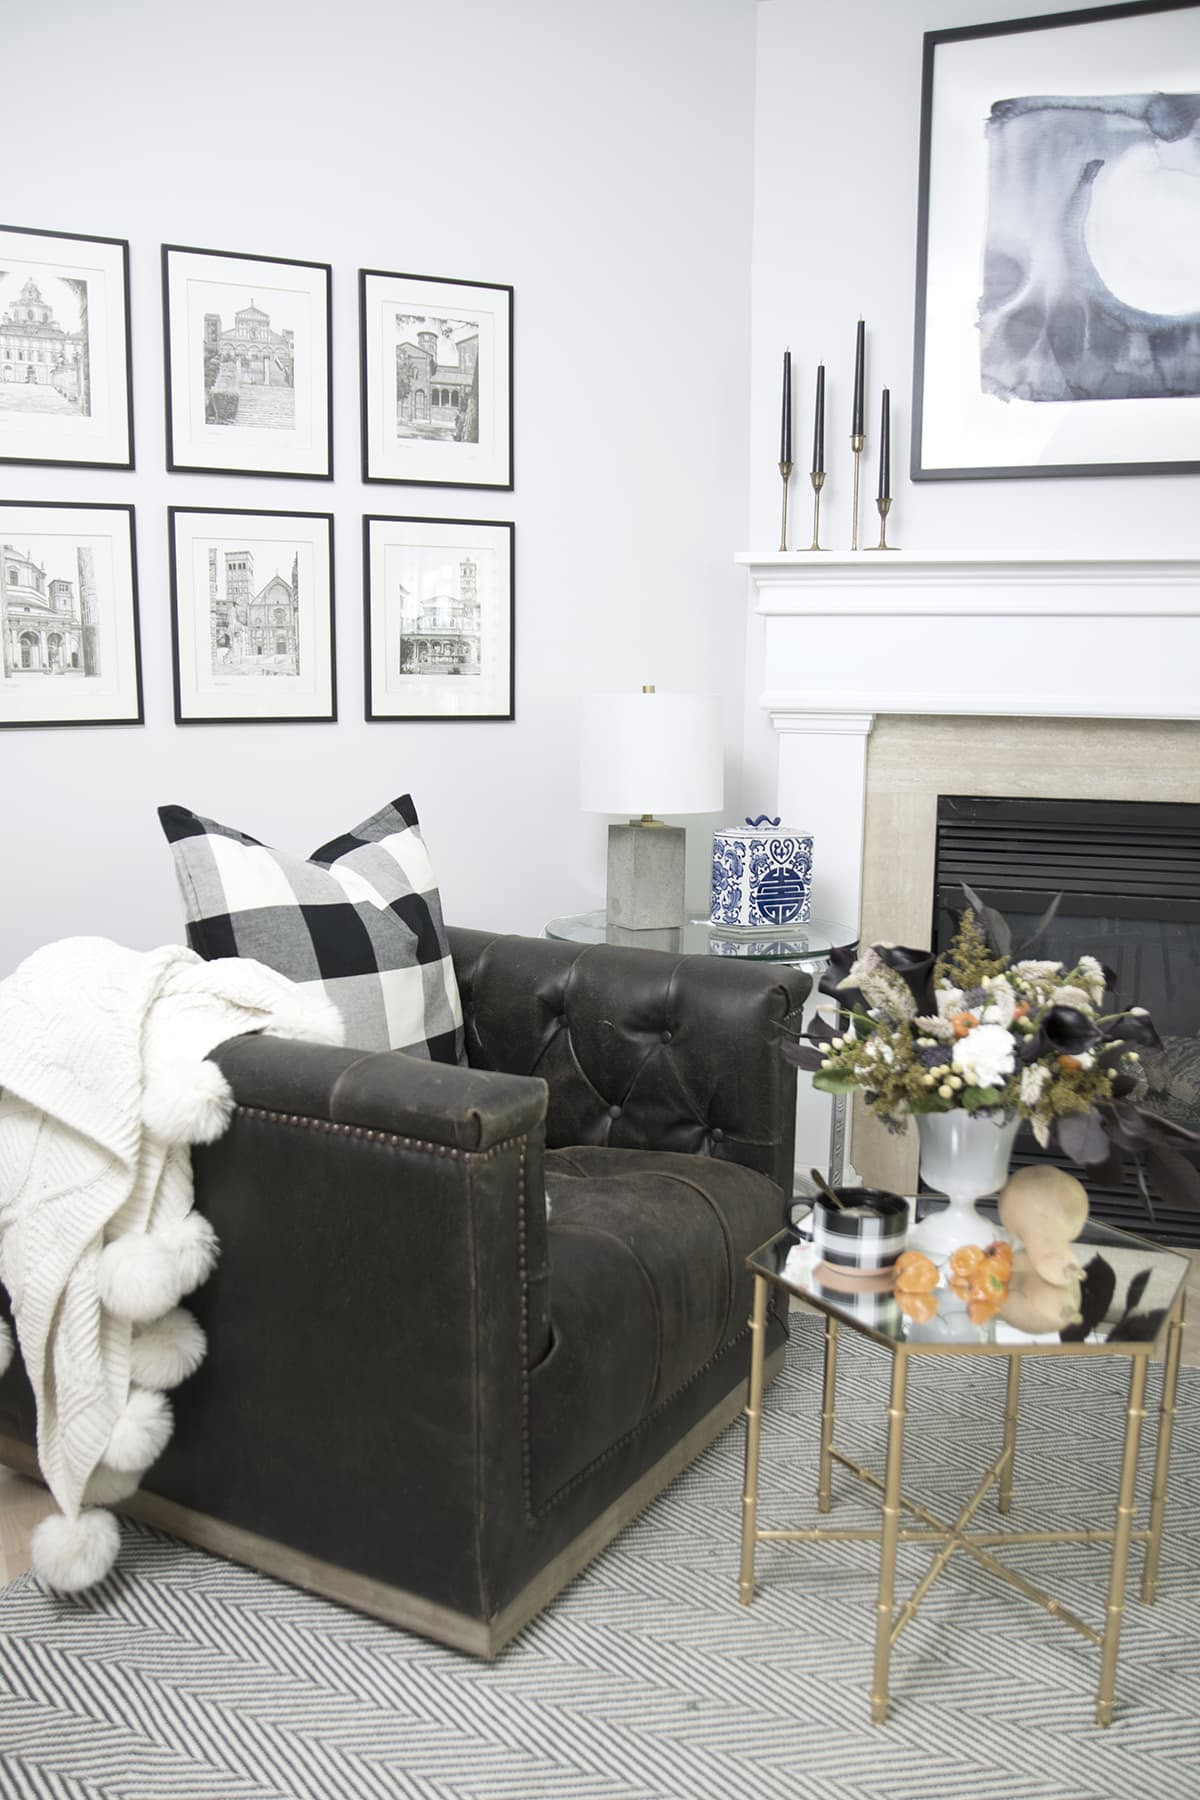 modern and minimal fall decor in this eclectic home tour | orange hot peppers instead of pumpkins with black calla lilly's for modern fall decor | buffalo check